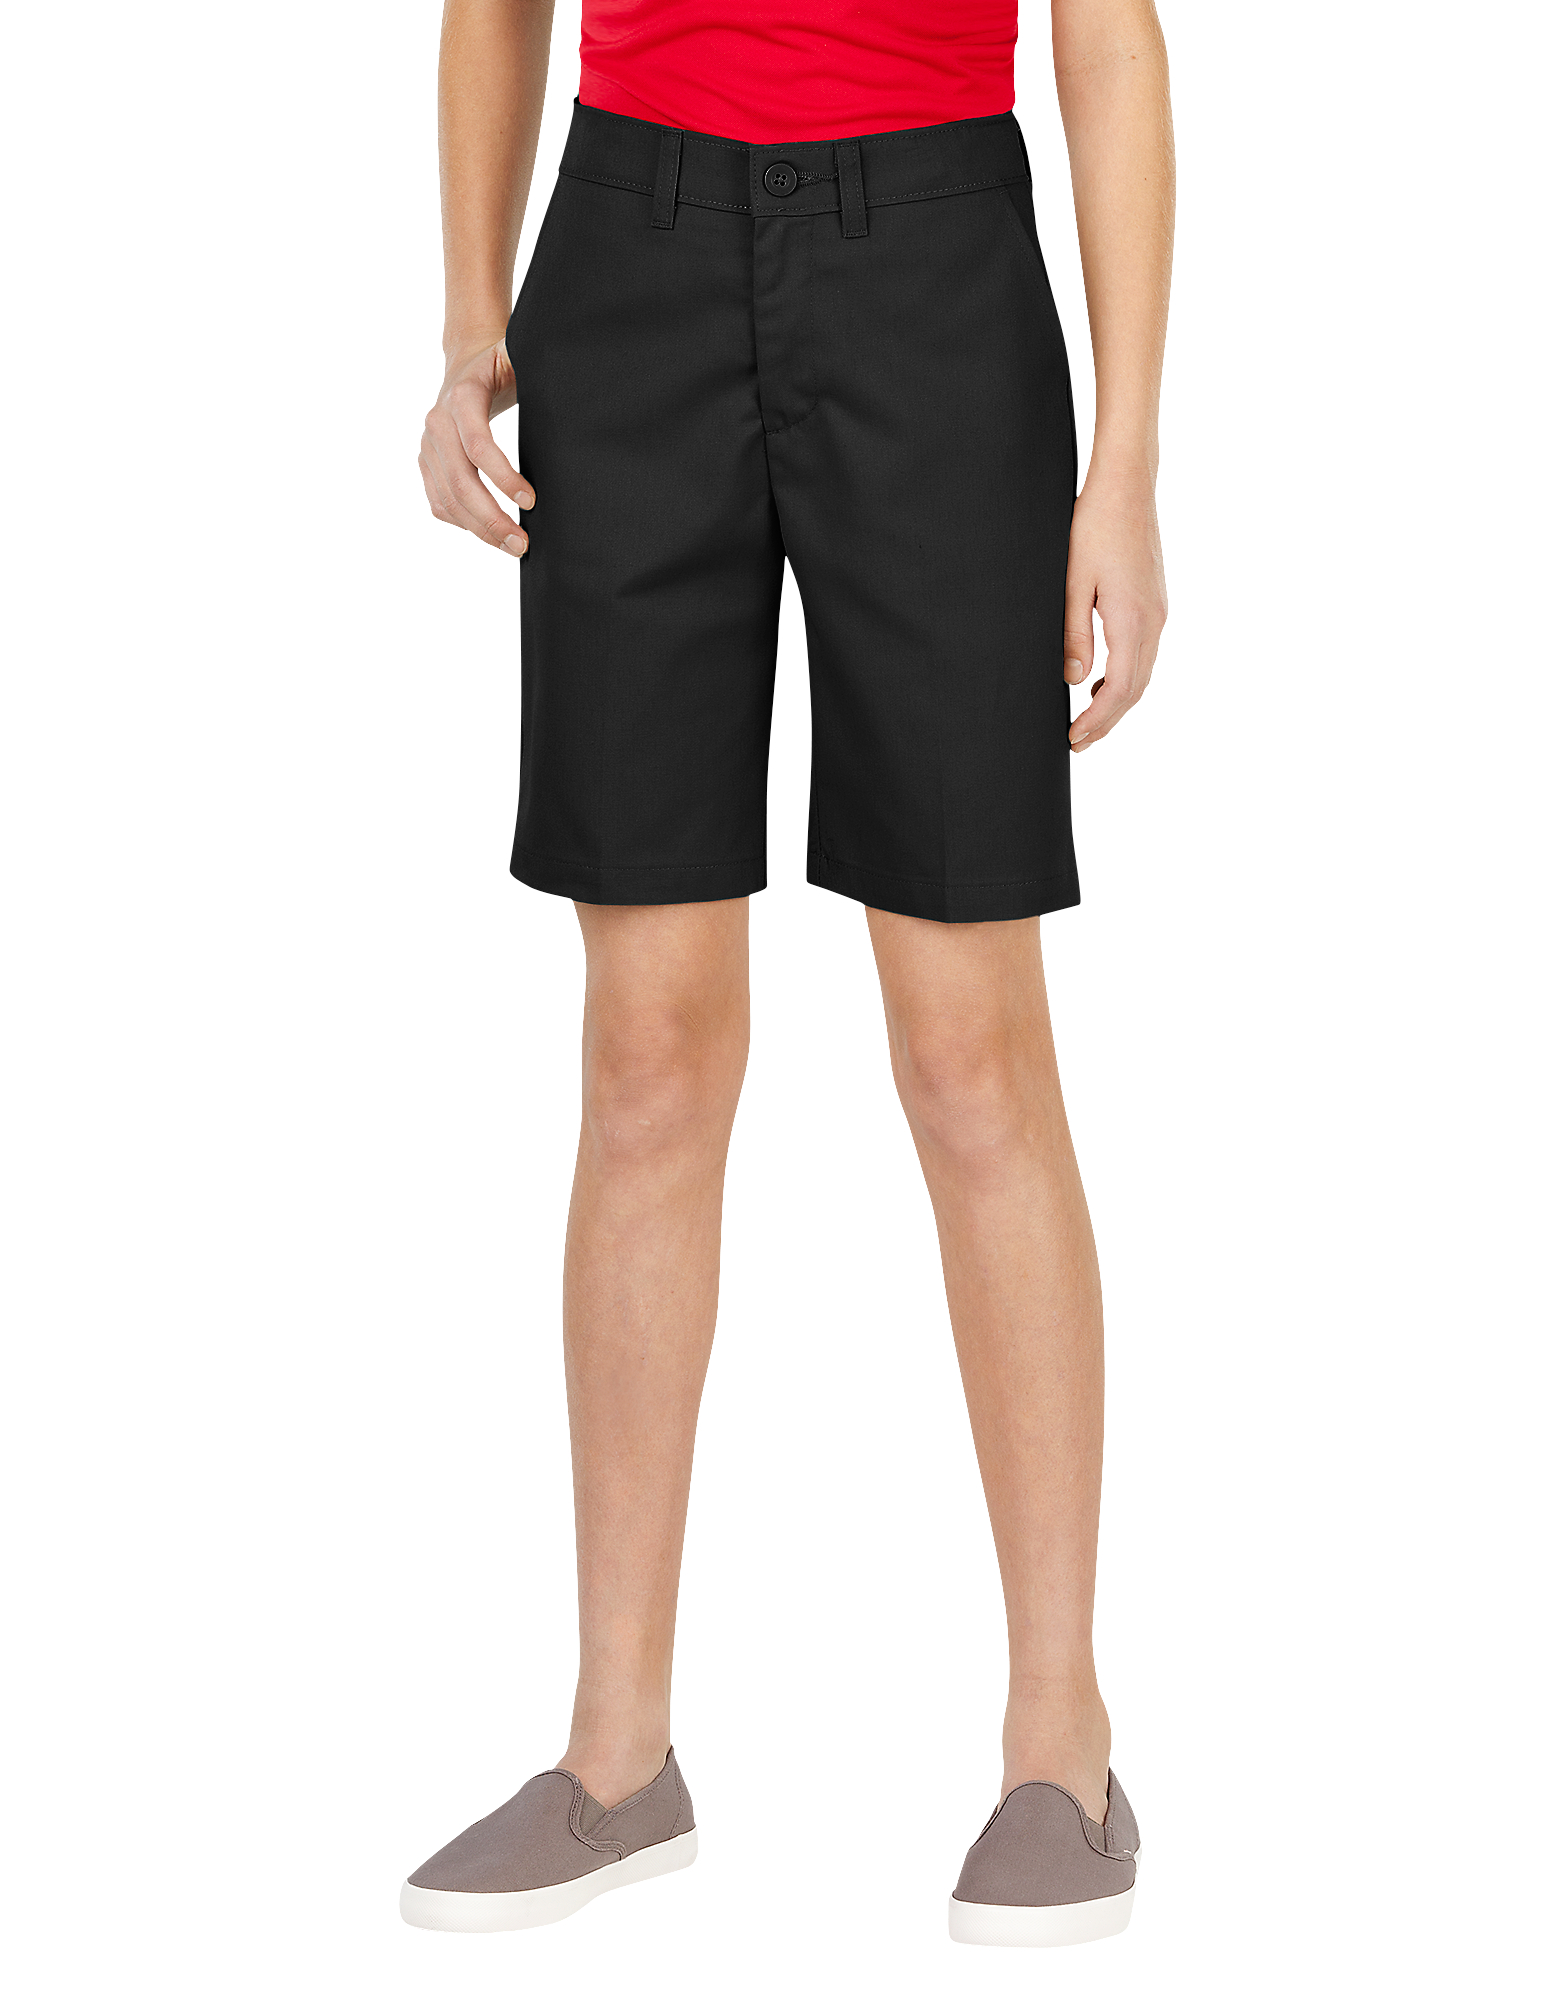 Girls' FlexWaist® Slim Fit Flat Front Shorts, 4-20 - Black (BK)